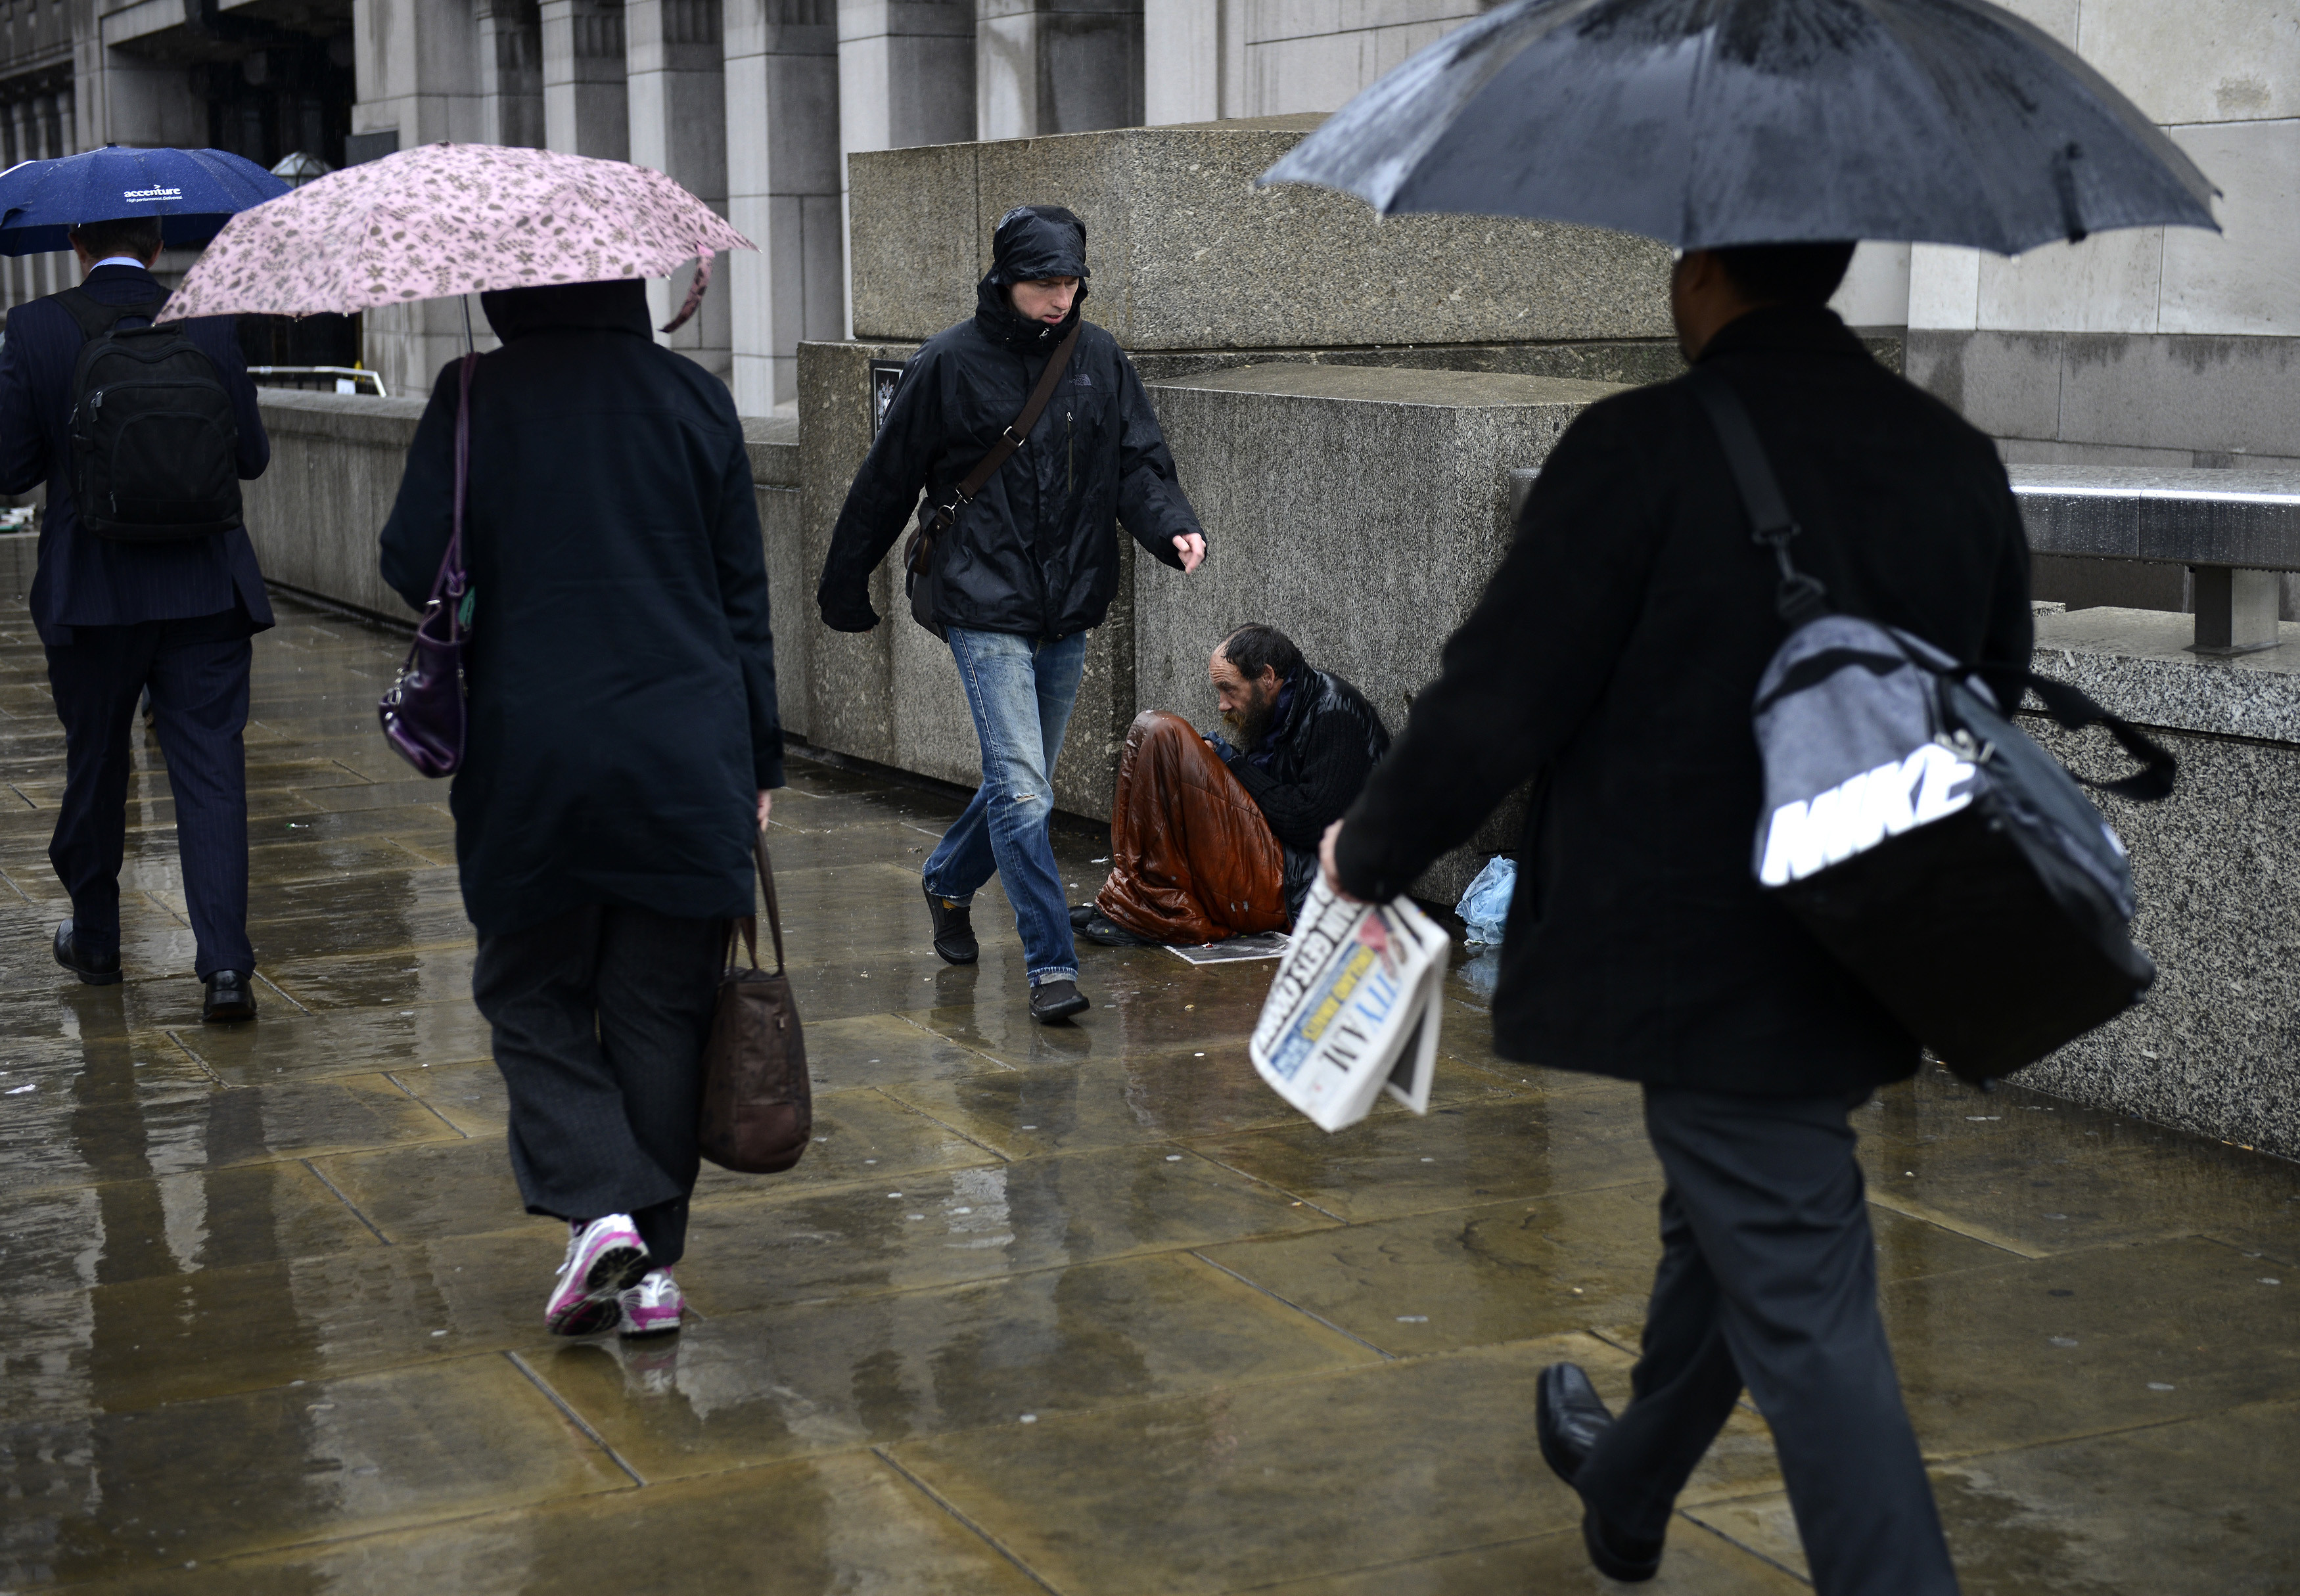 A homeless man sits in the rain as commuters make their way to work across London Bridge